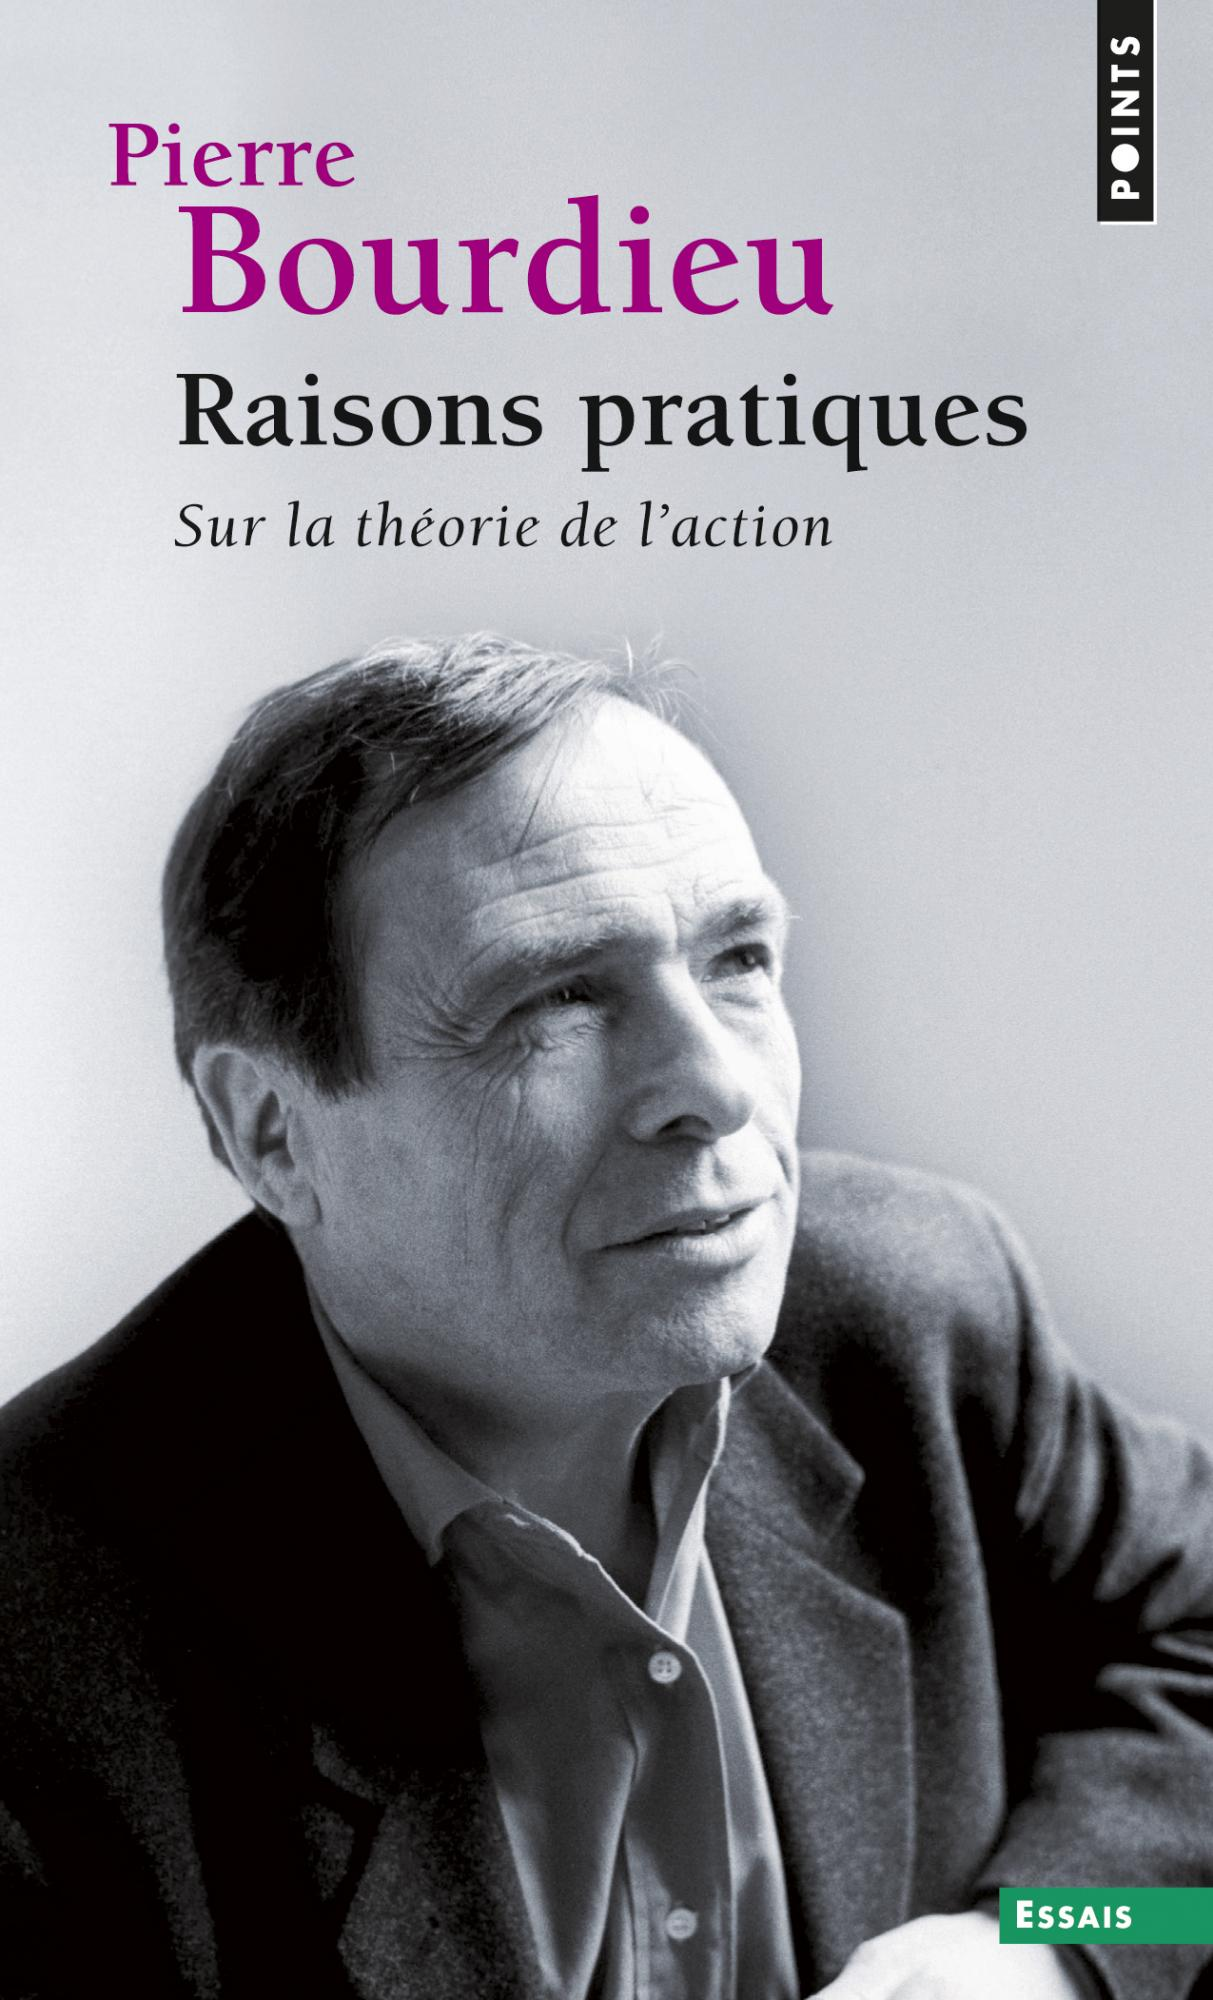 pierre bourdieu About pierre bourdieu: bourdieu pioneered investigative frameworks and terminologies such as cultural, social, and symbolic capital, and the concepts of.